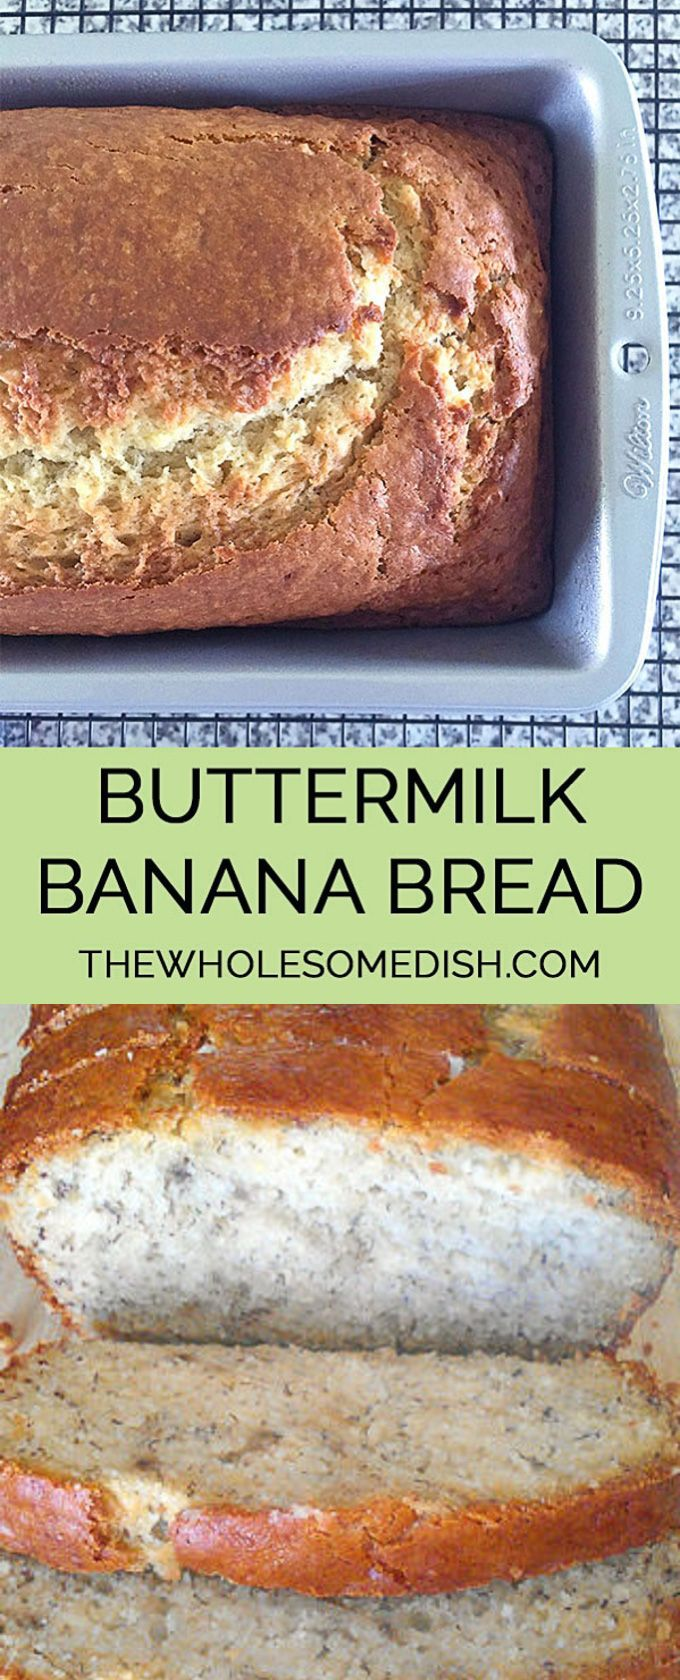 The Best Buttermilk Banana Bread The Wholesome Dish Recipe Buttermilk Banana Bread Best Banana Bread Banana Bread Recipes